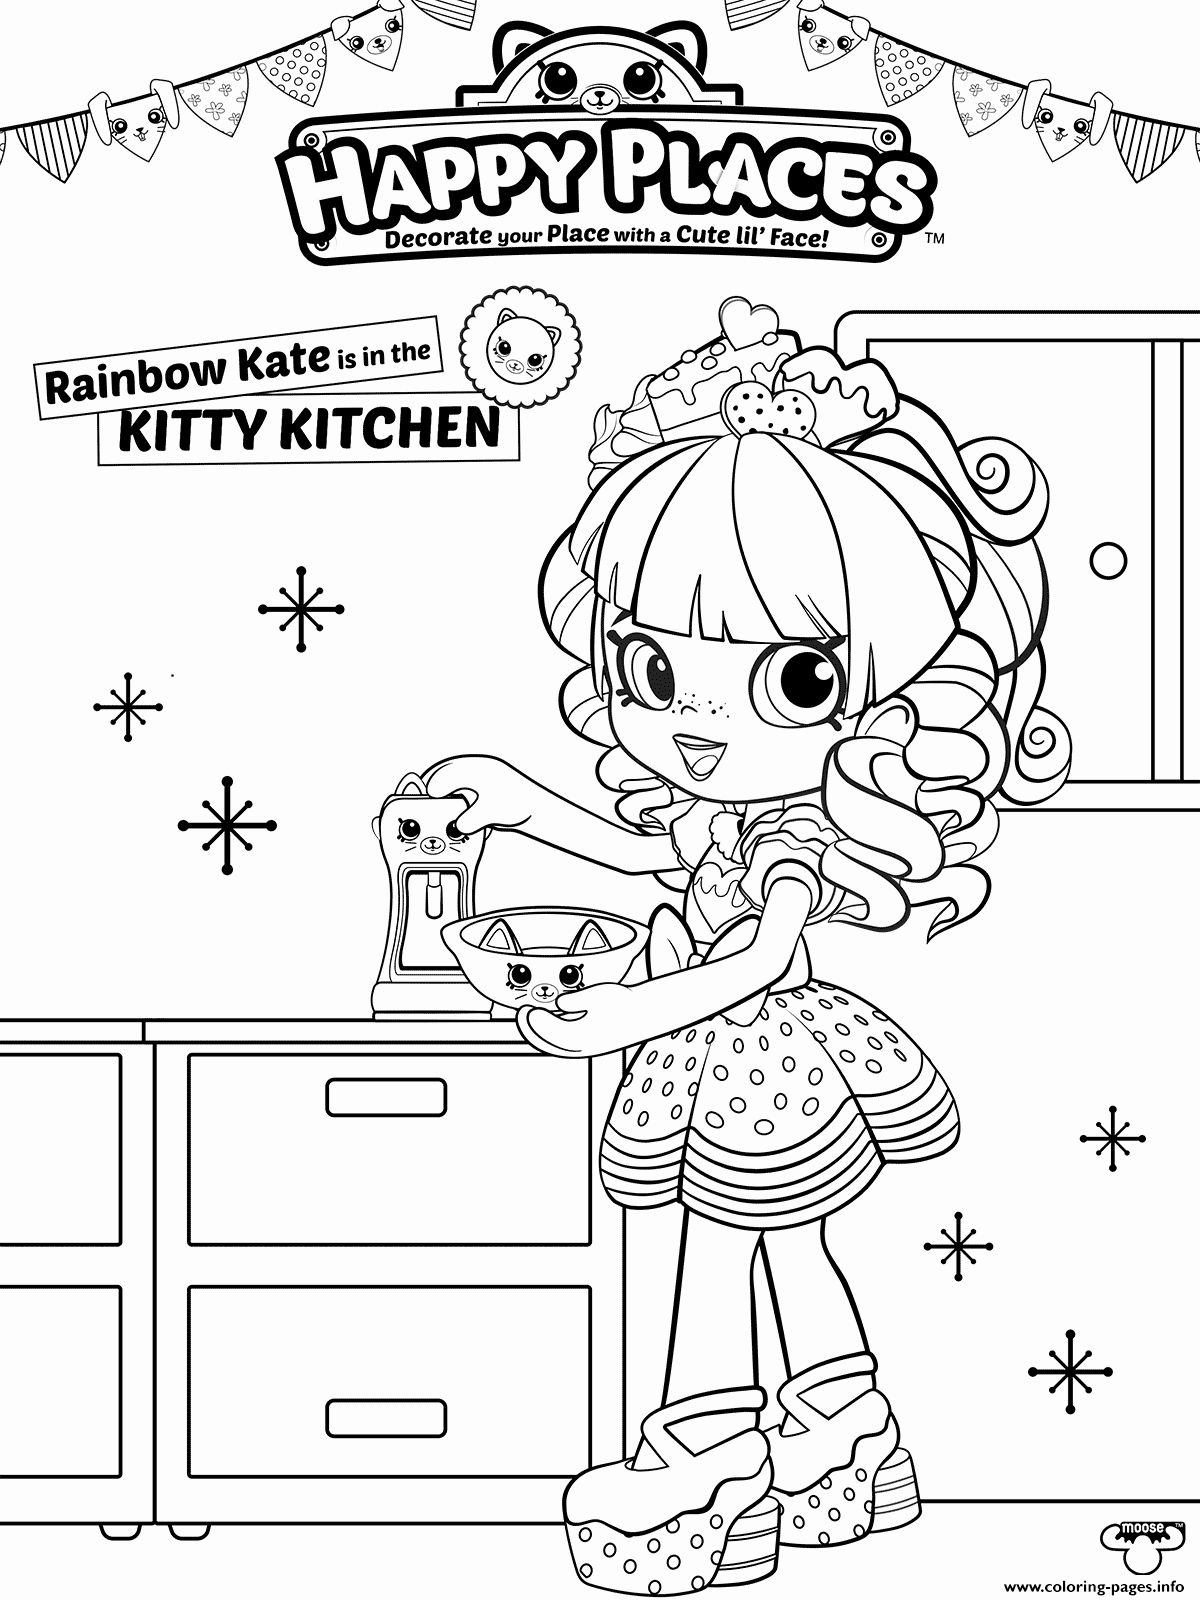 Unicorn Kitty Coloring Page Fresh Shopkins Coloring Pages Happy